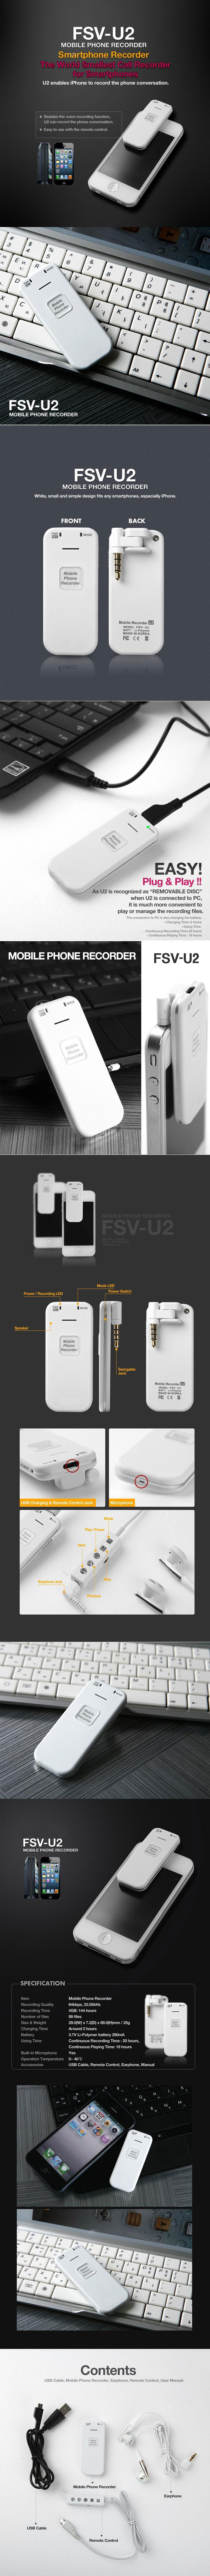 Professional Mobile Phone Recorder Fsv U2 Telephone Record Control Compatible With Any Smartphones